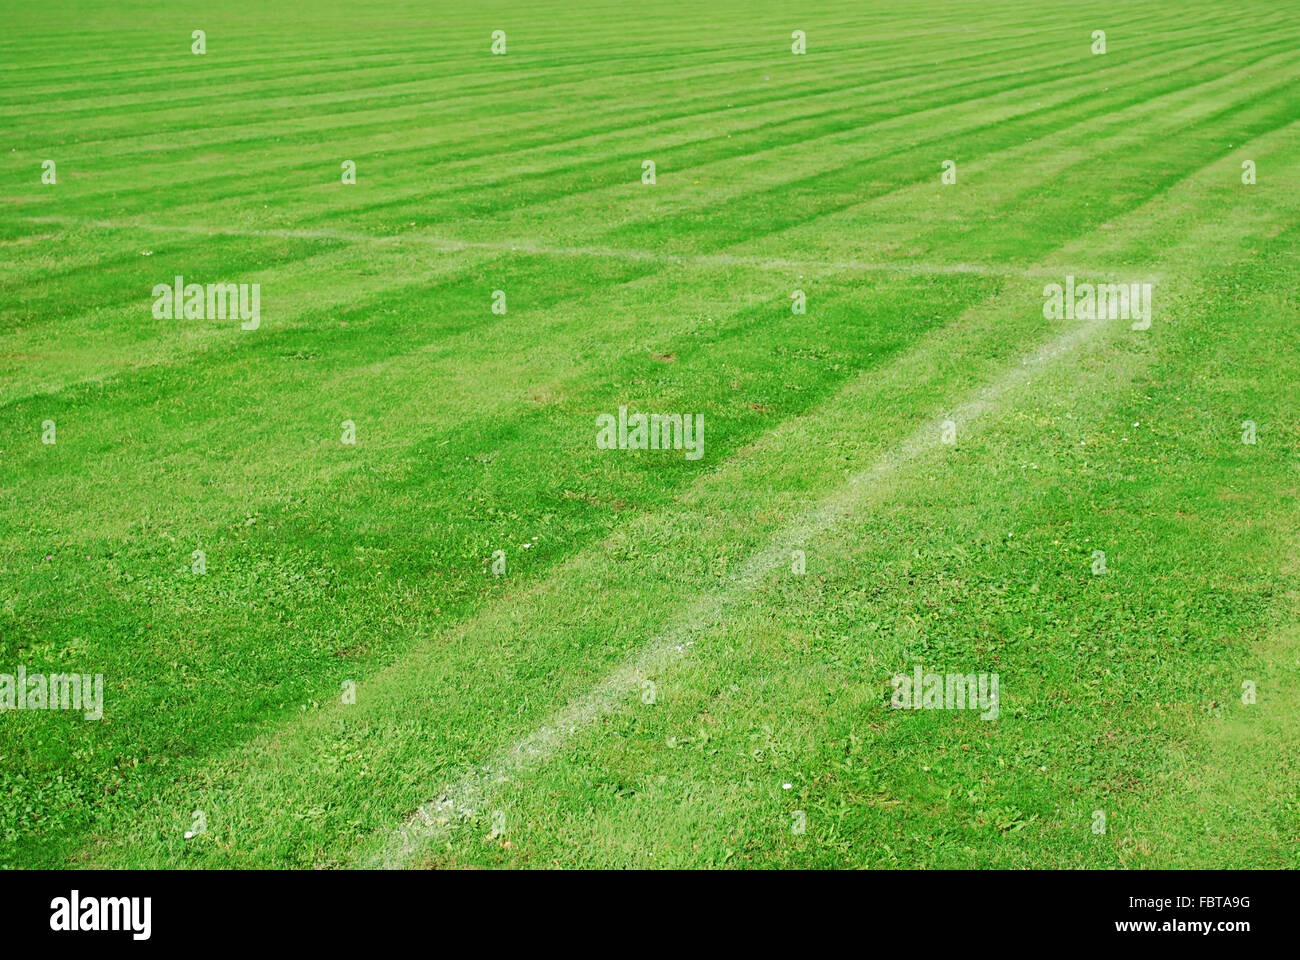 football pitch - Stock Image